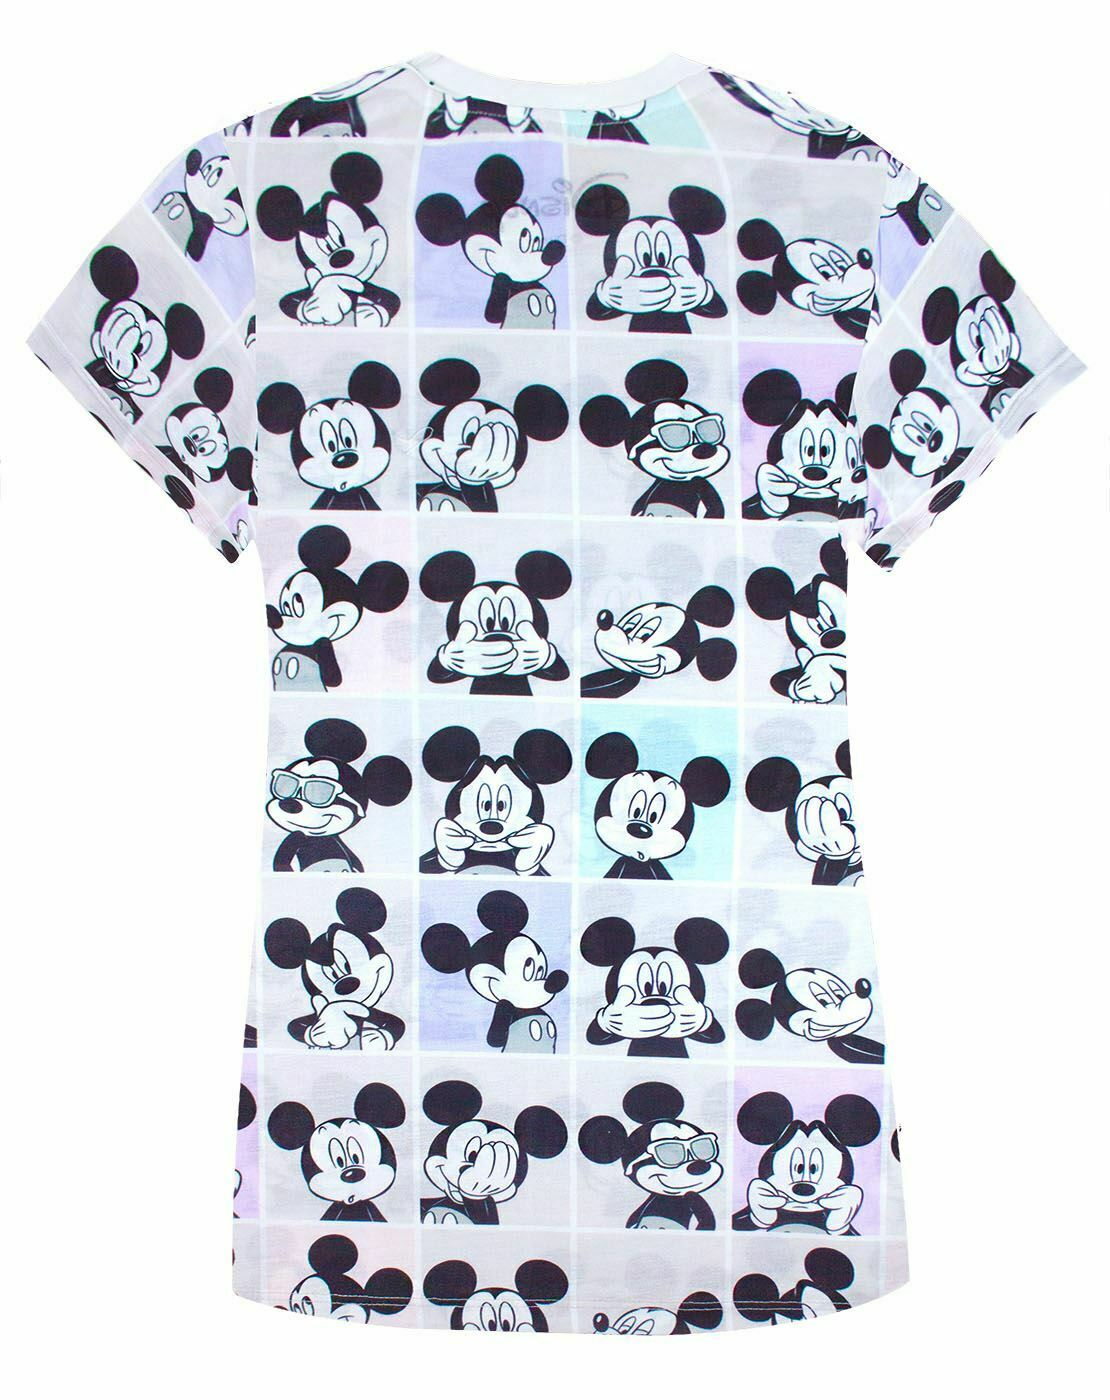 Disney-Mickey-Mouse-Photobooth-All-Over-Print-Women-039-s-T-shirt thumbnail 8